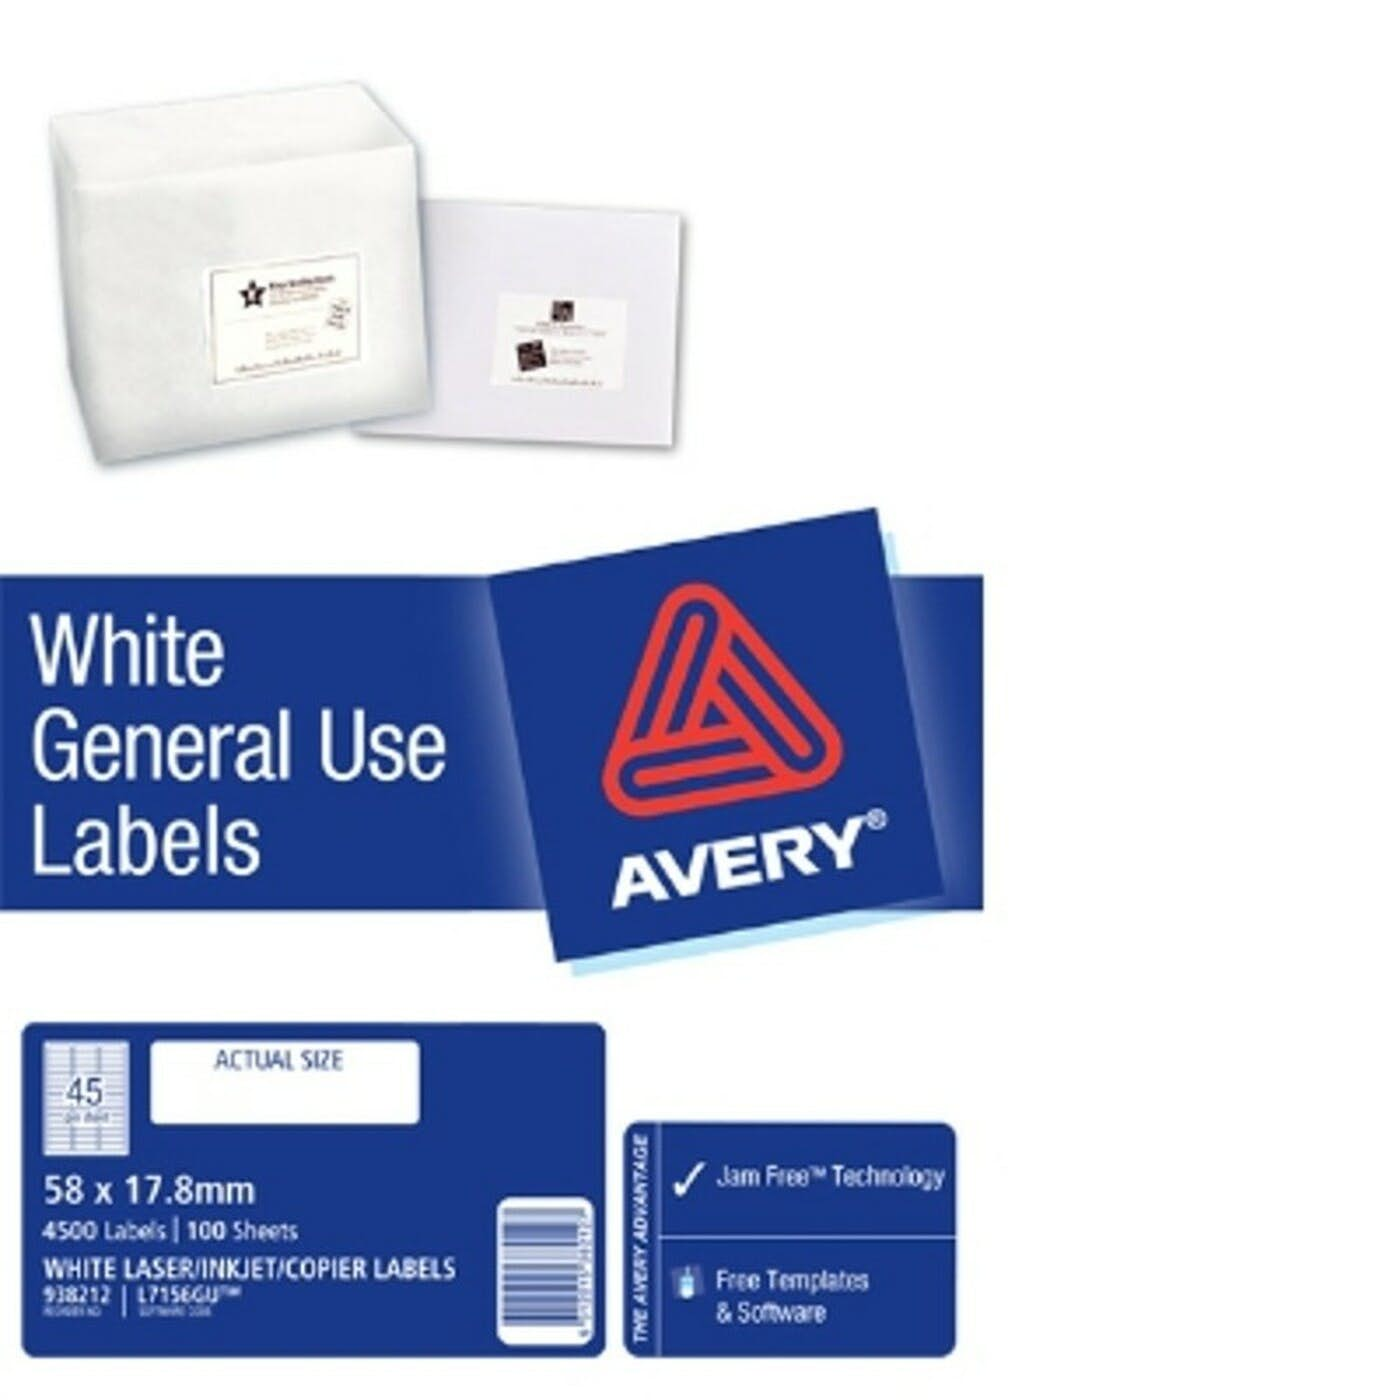 AVERY GENERAL USE LABELS L7156 45 LABELS/SHEET